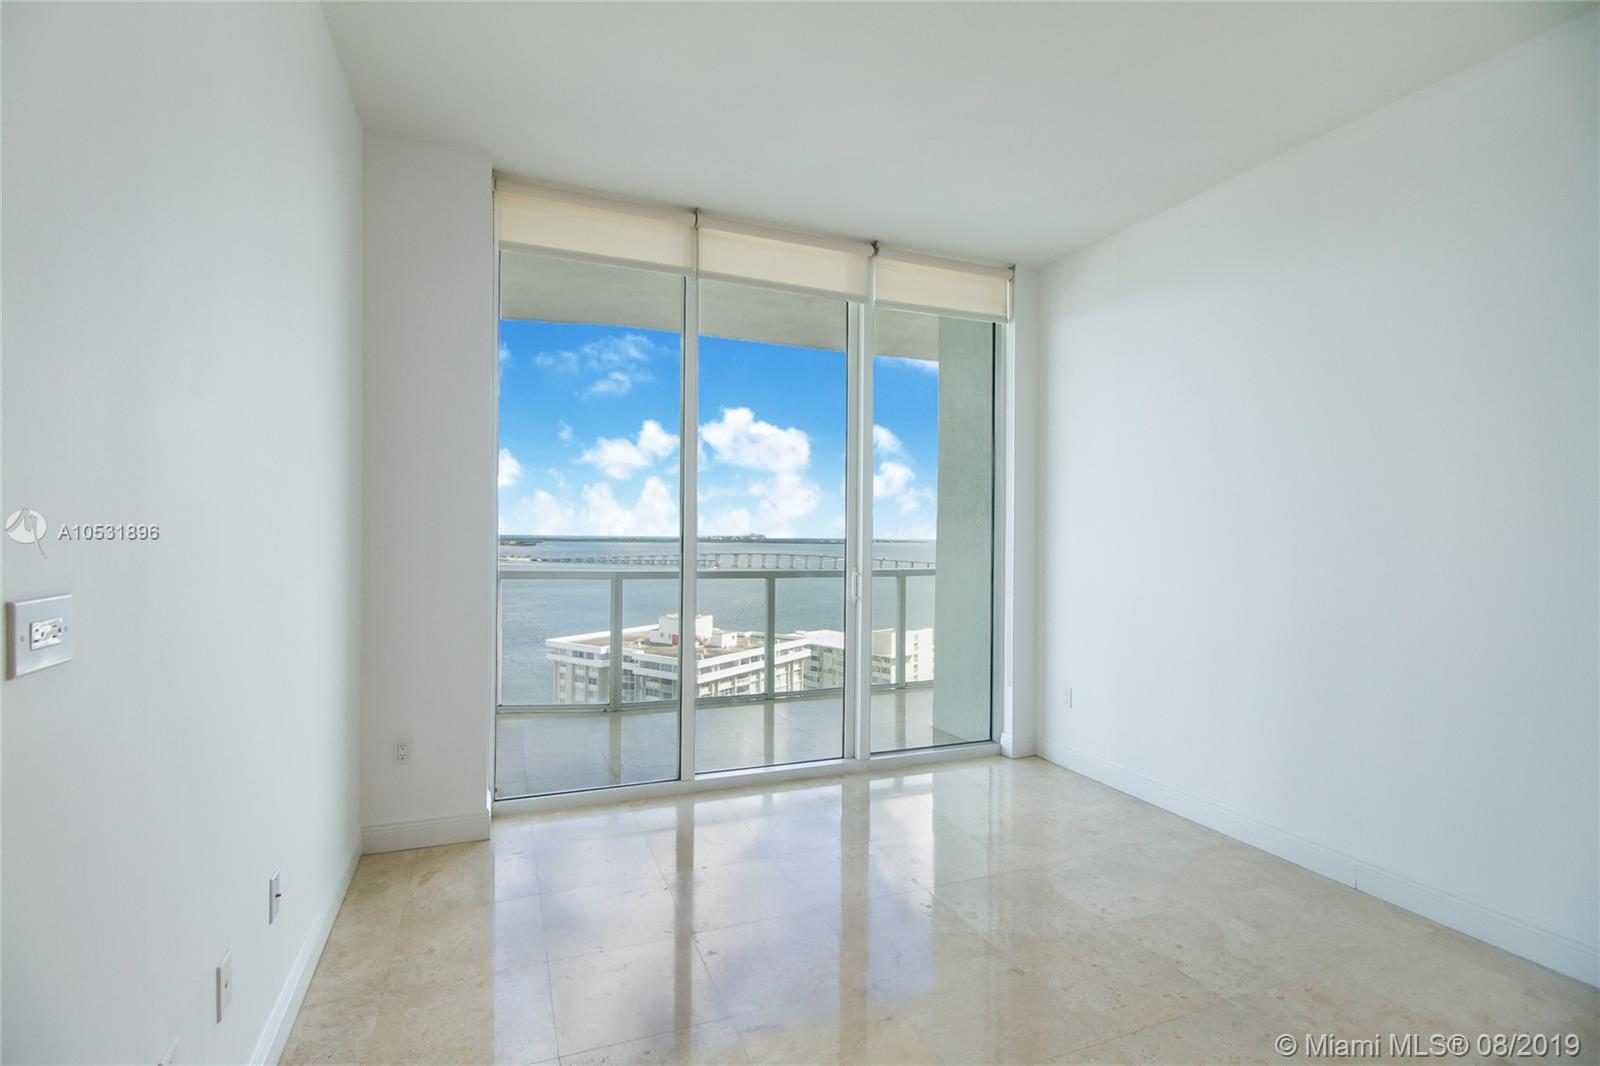 218 SE 14th St, Miami, Fl 33131, Emerald at Brickell #2305, Brickell, Miami A10531896 image #12